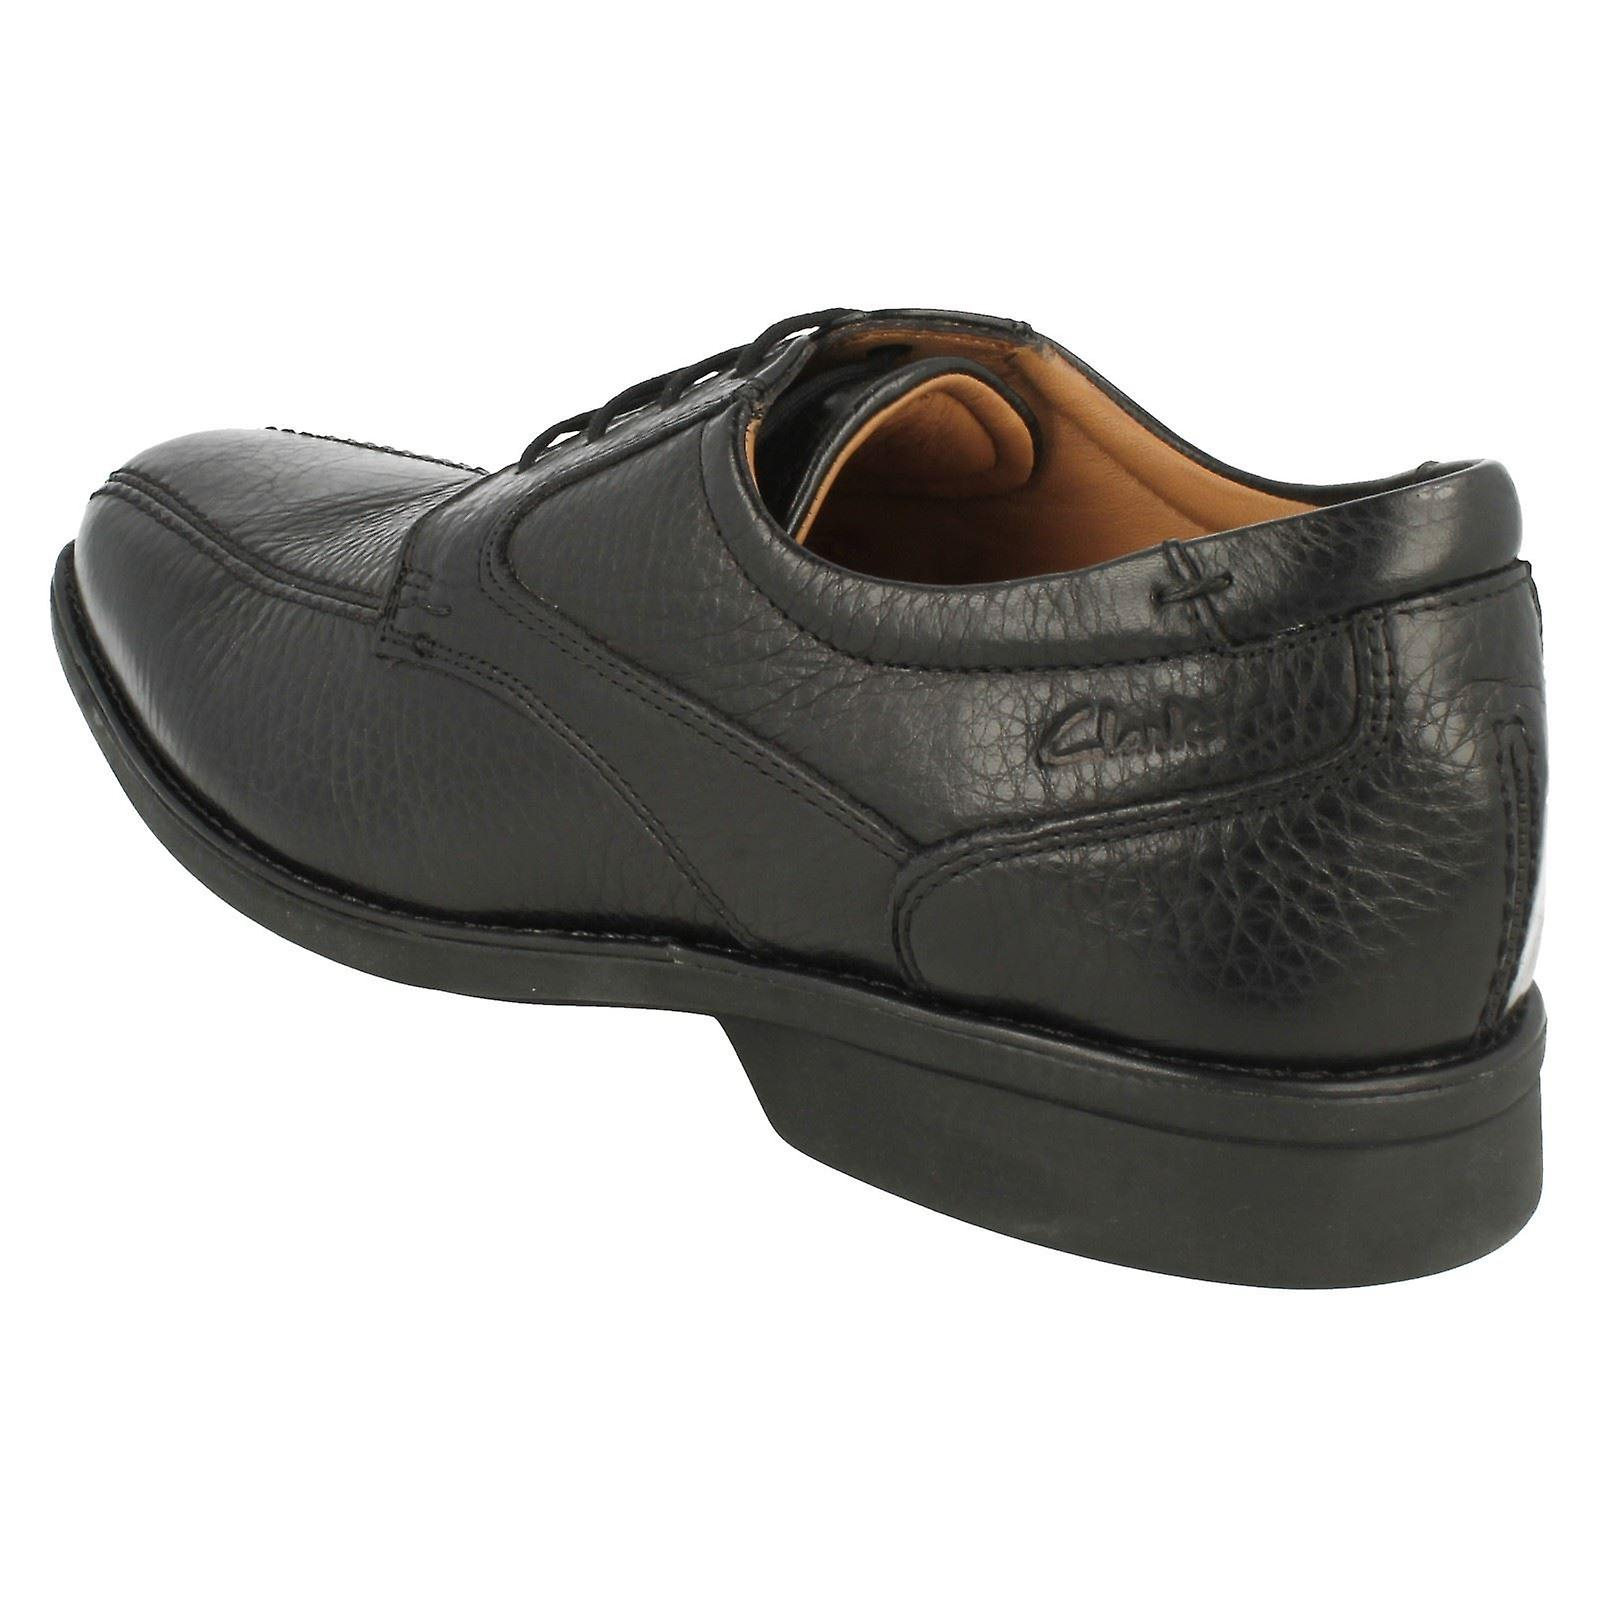 Mens Clarks formelle Lace Up chaussures Foot Soft